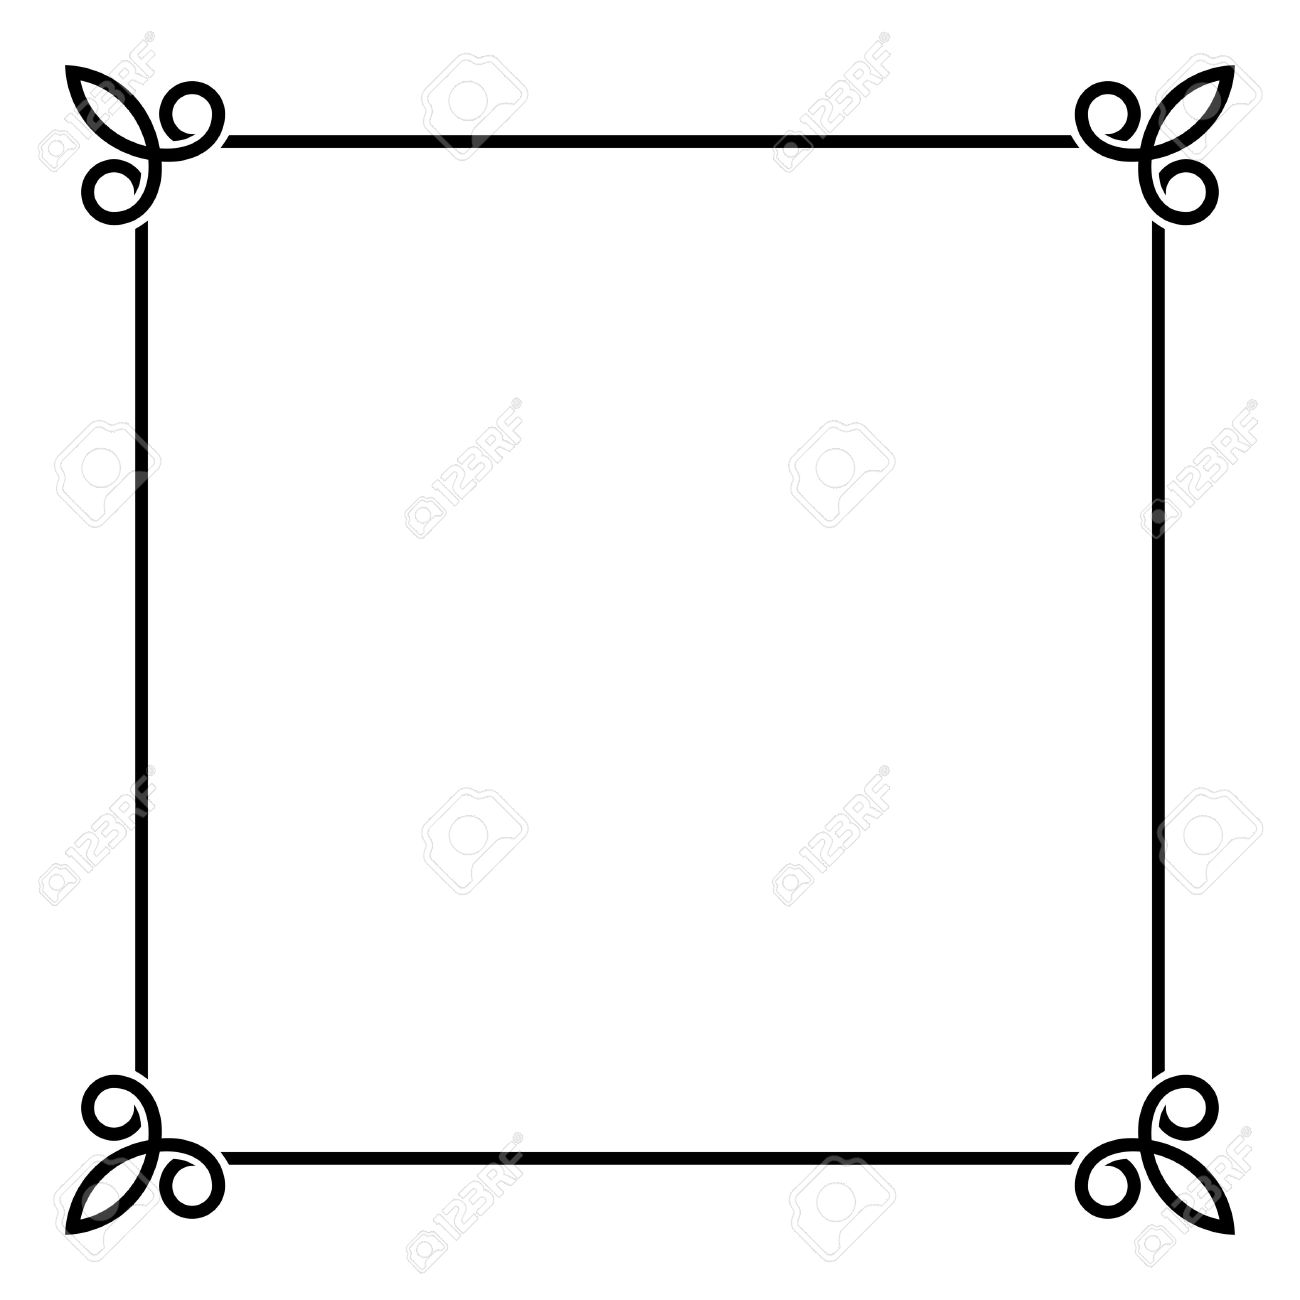 Black Border Vintage Frame on White Background. Vector illustration.